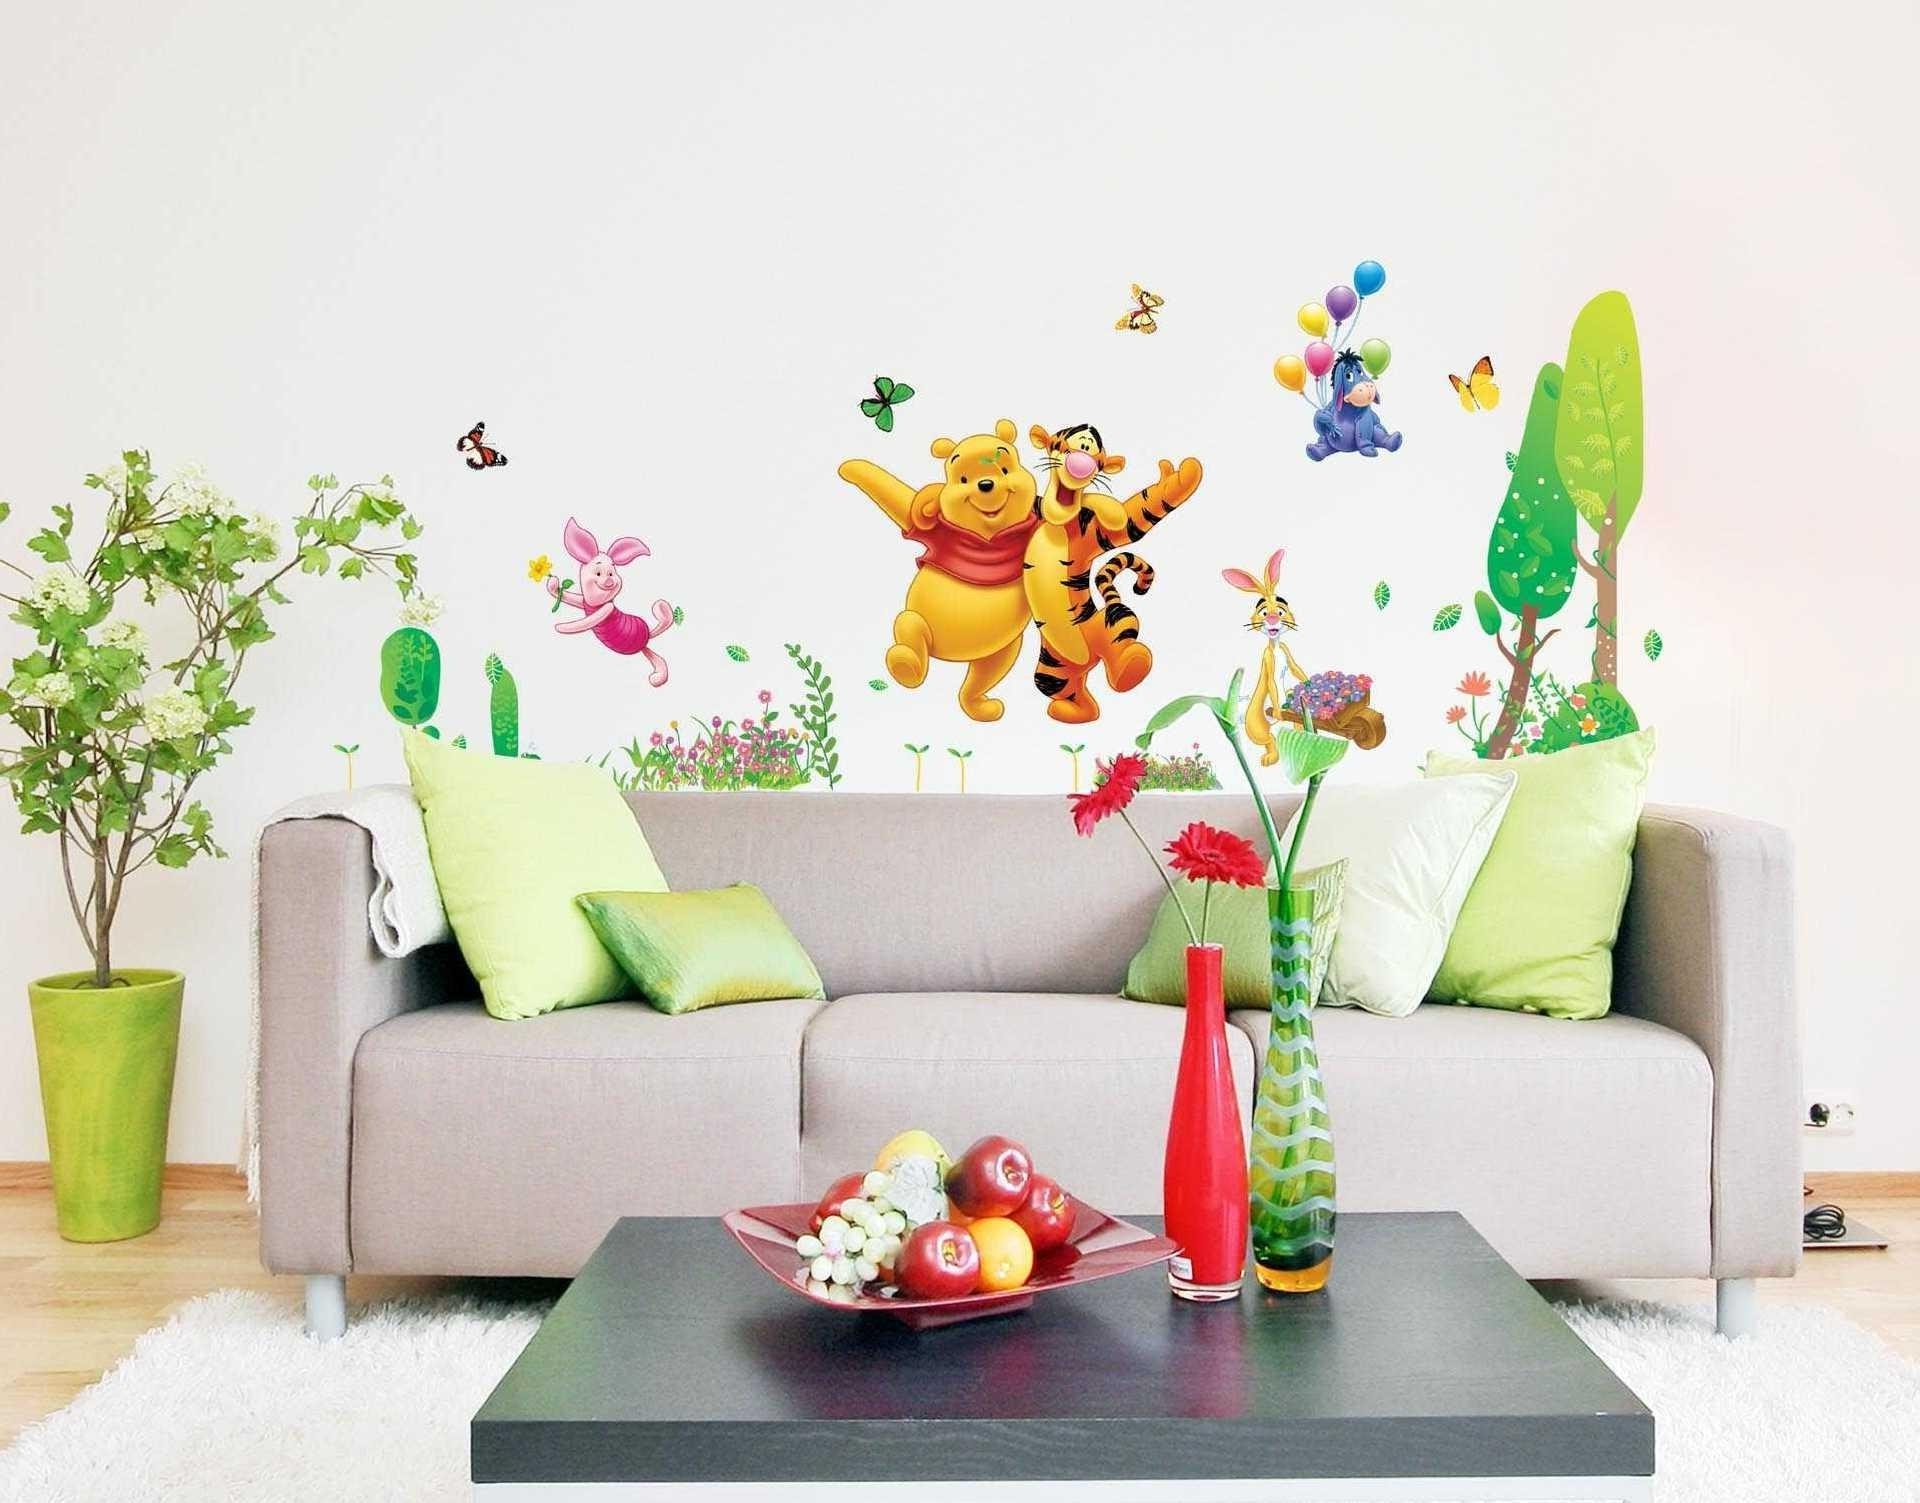 Well Liked The Pooh And Jumping Tigger Wall Sticker Inside Winnie The Pooh Wall Decor (View 4 of 15)